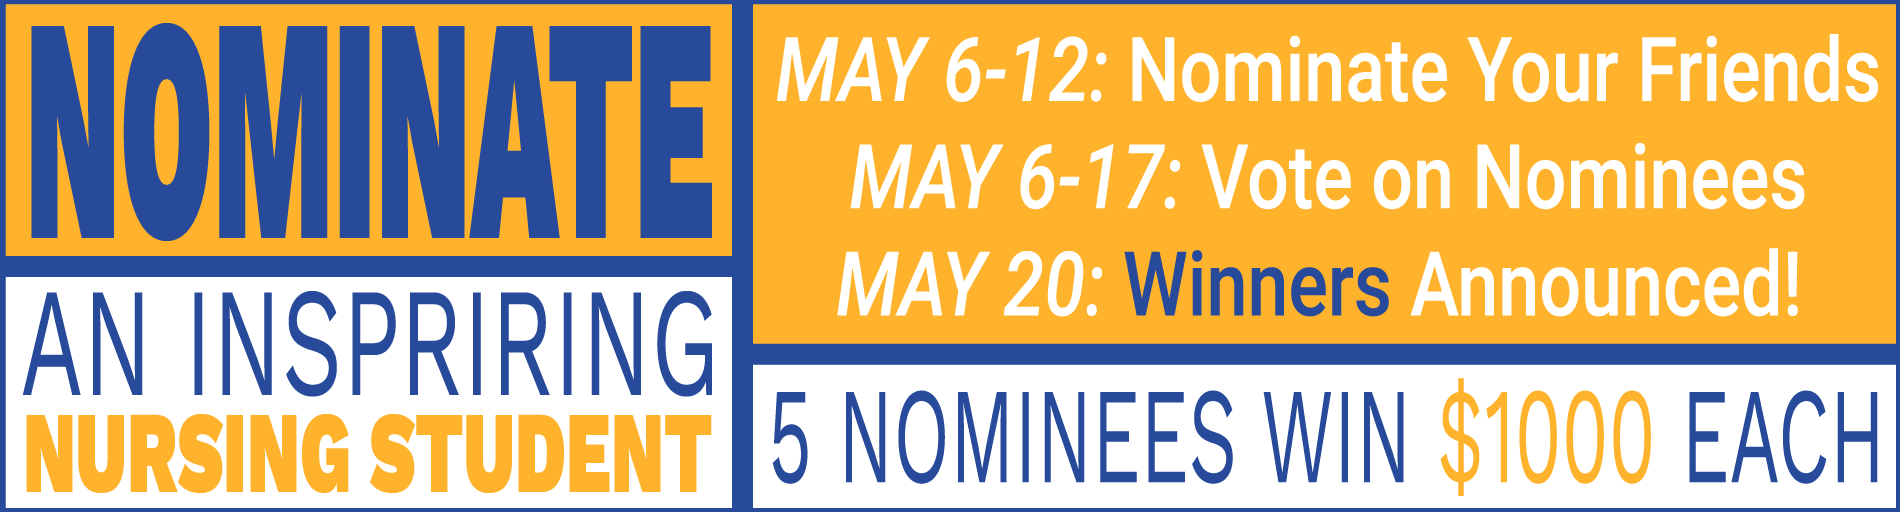 Nominate an Inspiring Student | May 6012: Nominate Your Friends | May 6-17: Vote on Nominees | May 20: Winners Announced | 5 Nominees win $1000 each!